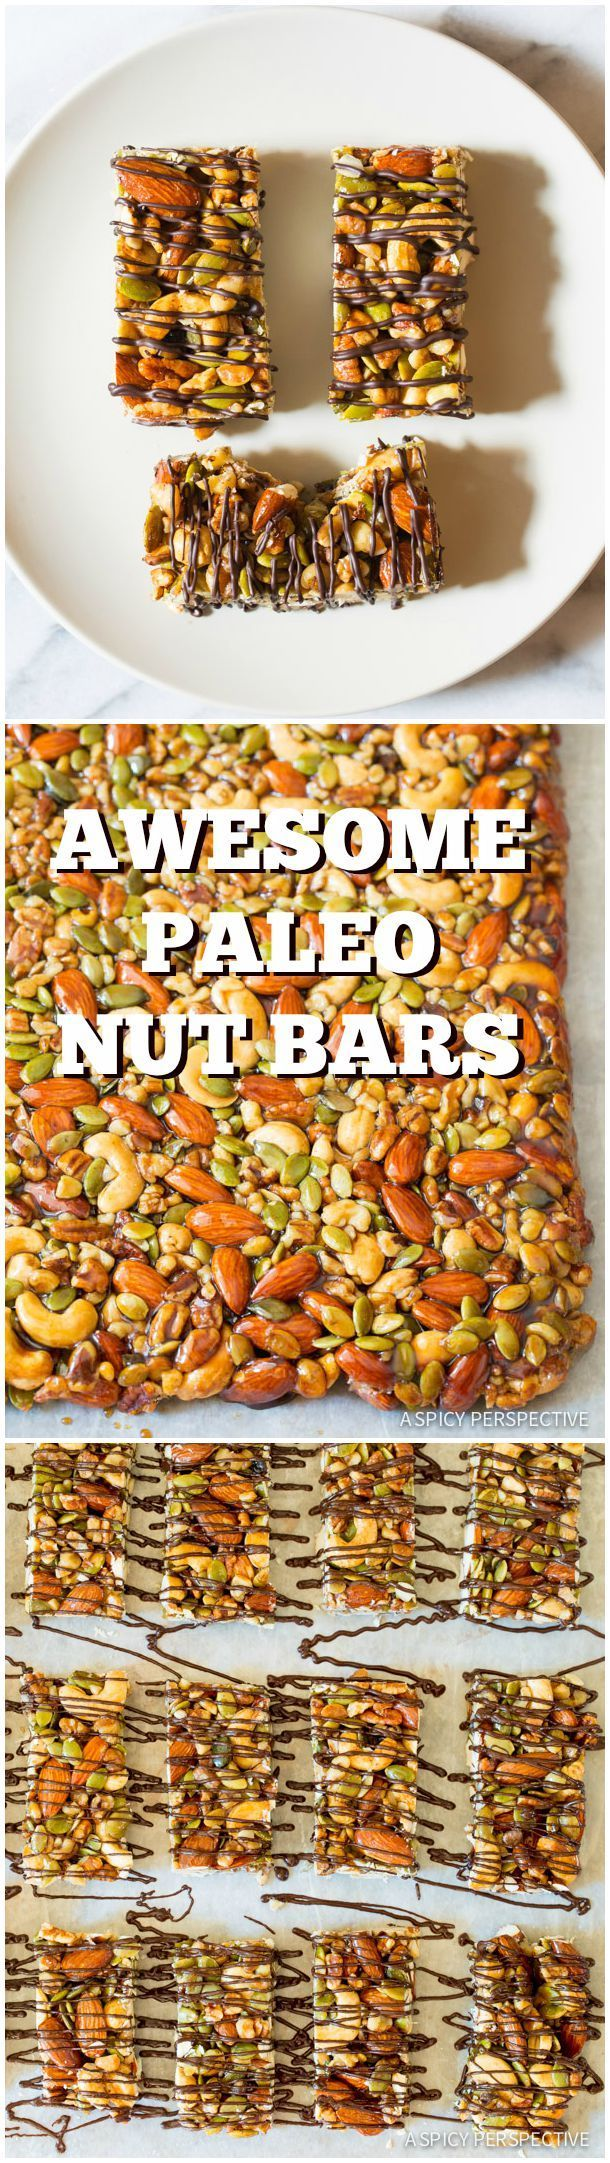 Httpspaleo diet menuspot crazy over these kid friendly httpspaleo diet menuspot crazy over these kid friendly paleo nut bar recipe with chocolate drizzle on aspicyperspective forumfinder Images